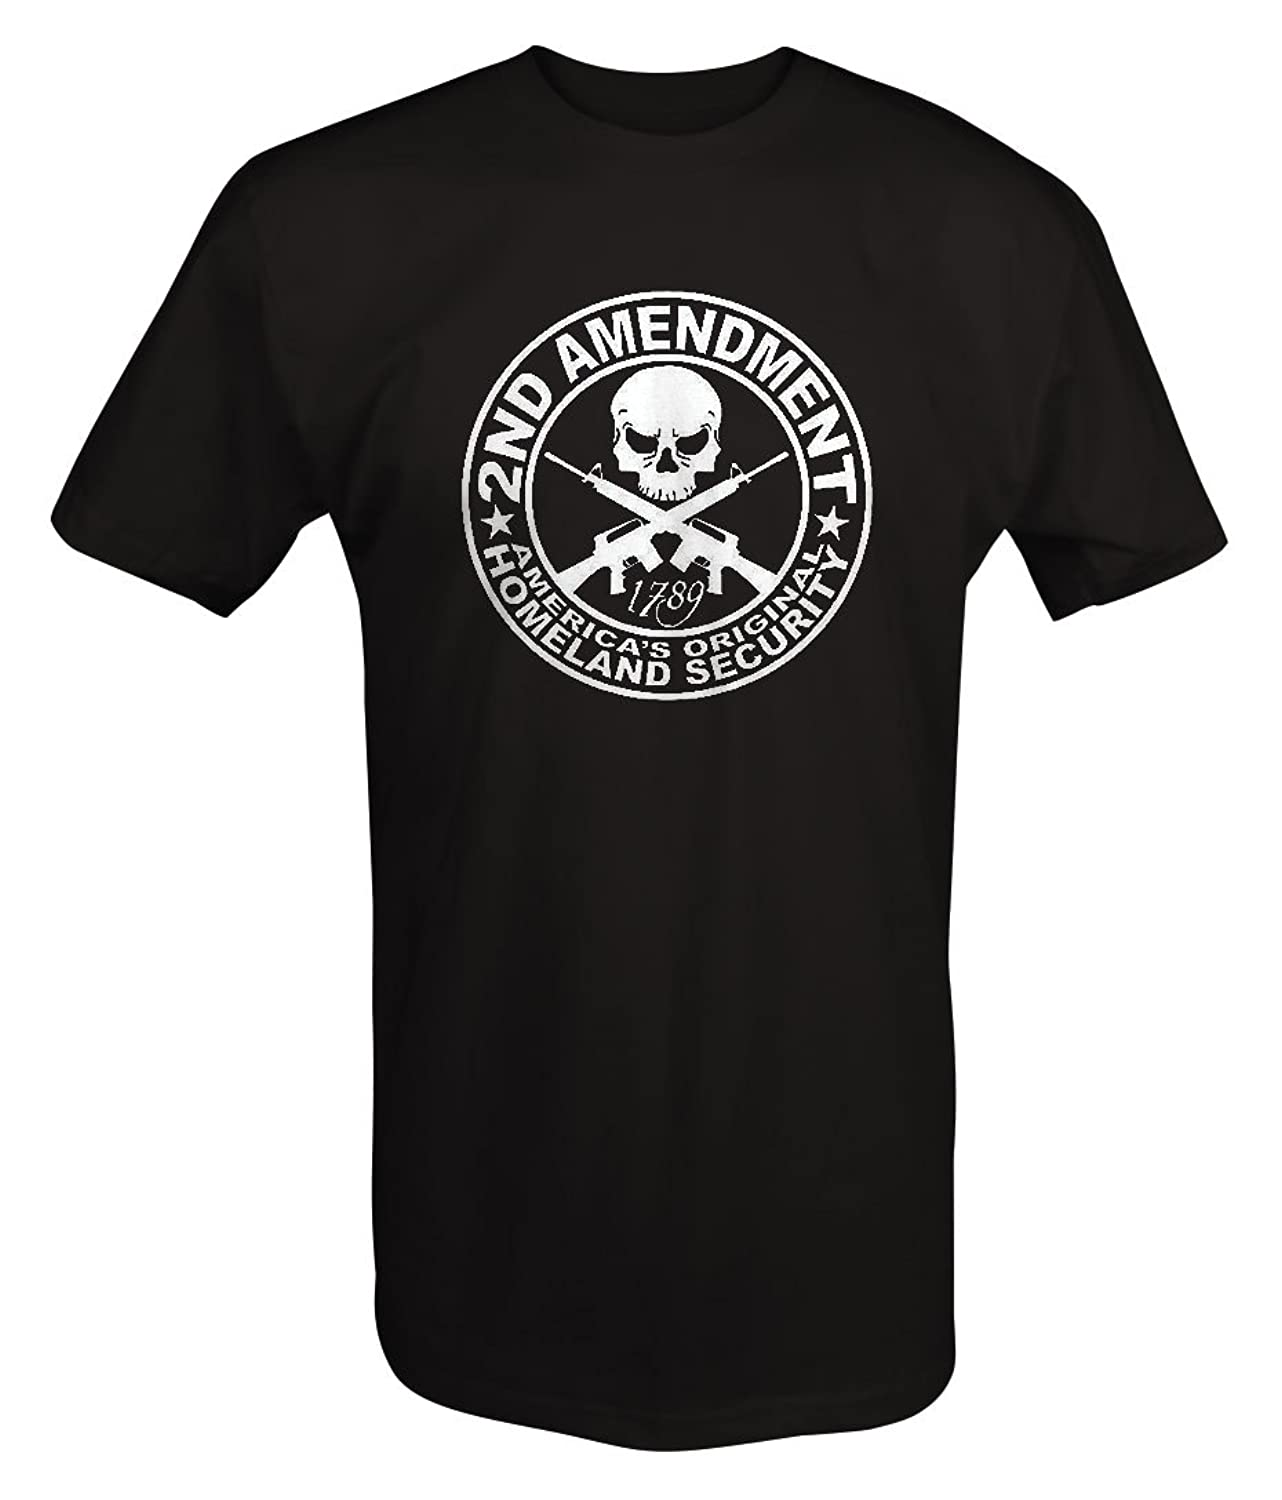 2nd Amendment America's Original Homeland Security T Shirt